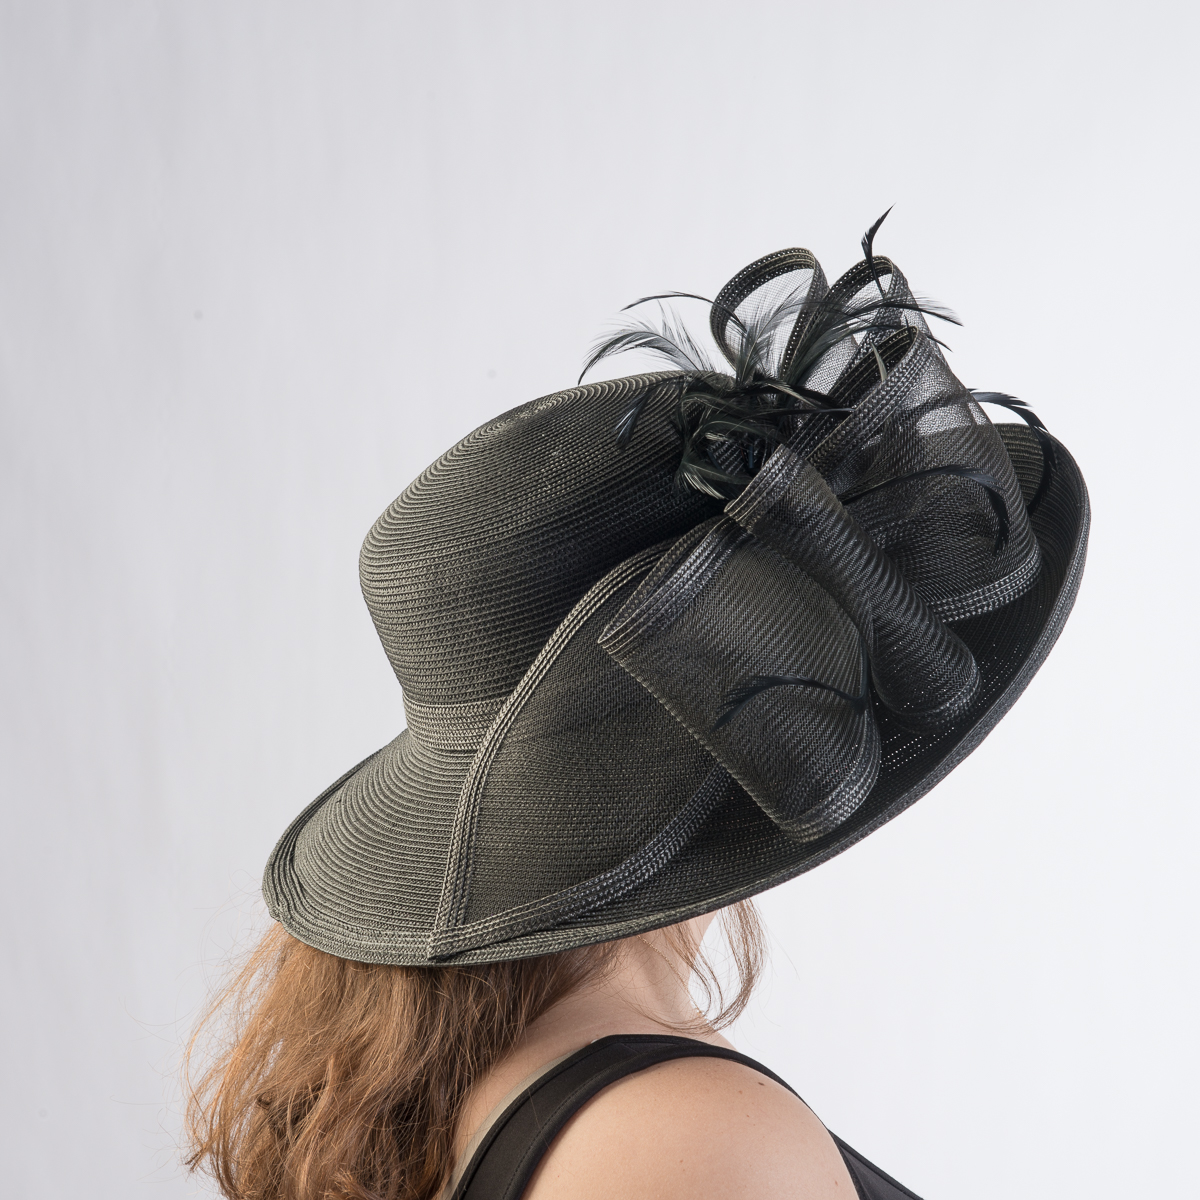 Bk Makeup Home: Black Large Off Face Poly Straw Hat-301806-BK- Sun Yorkos